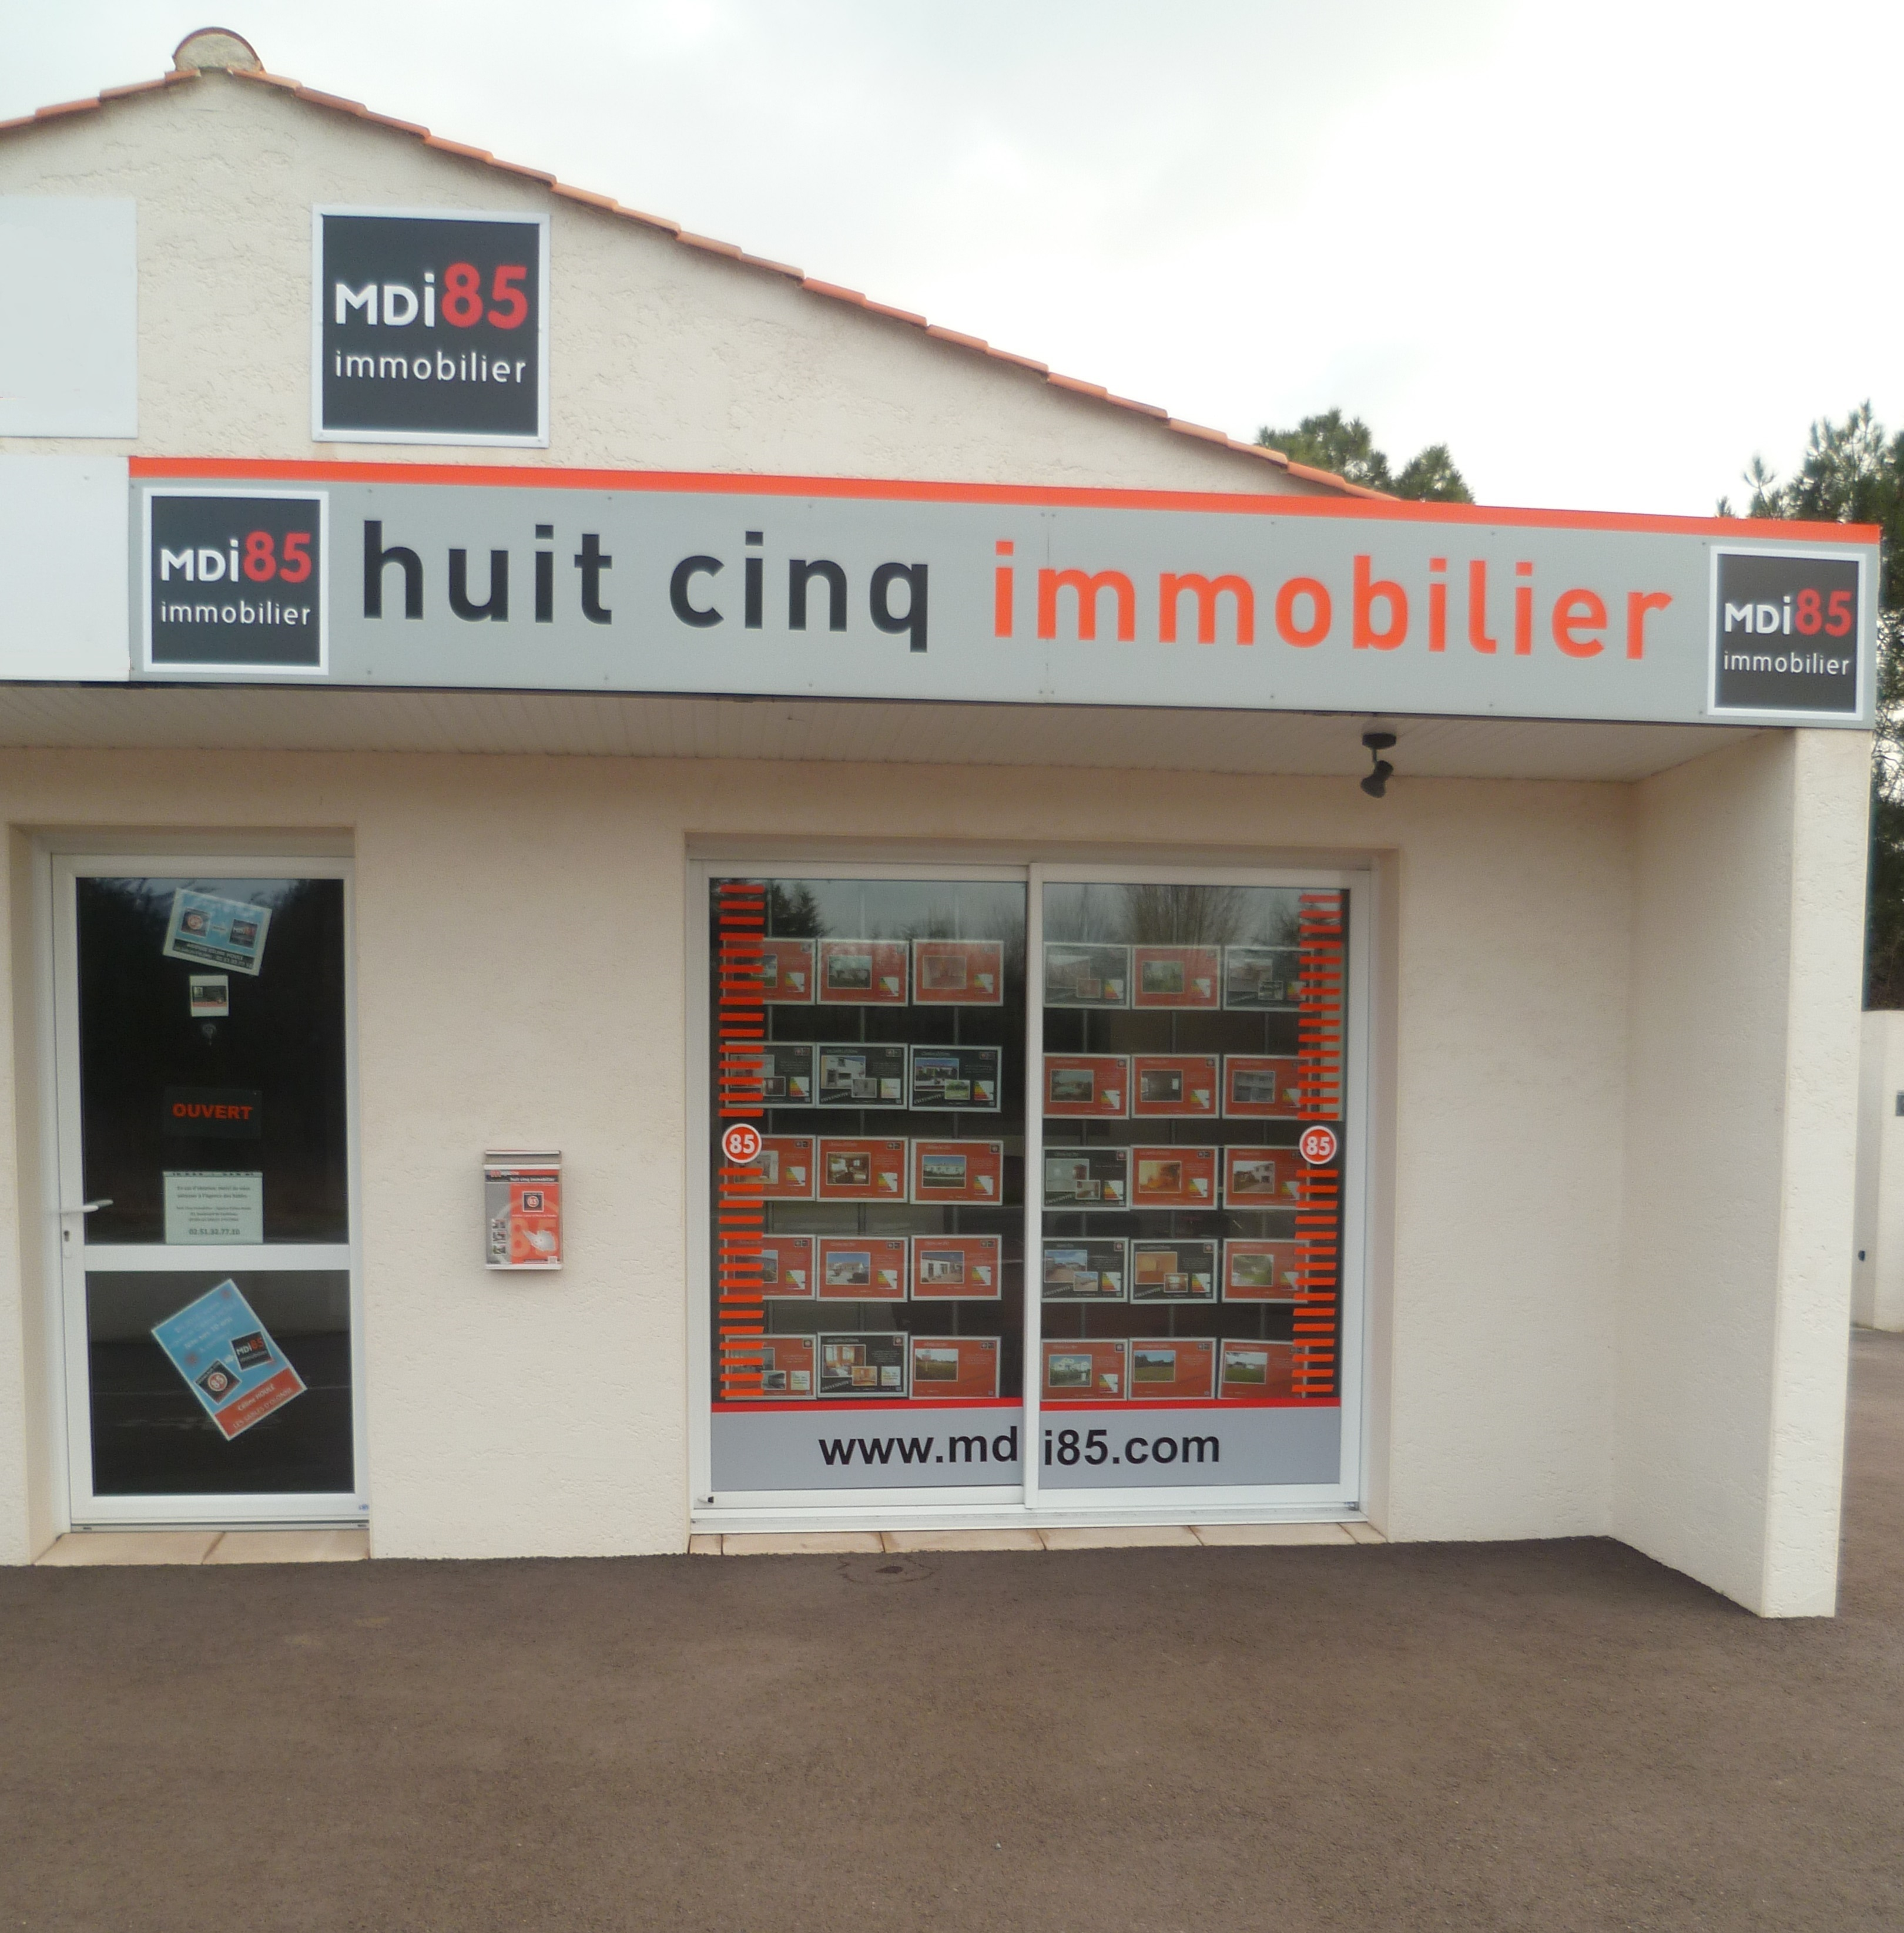 Agence immobili re olonne sur mer agence mdi85 c line for Agence immobiliere 85100